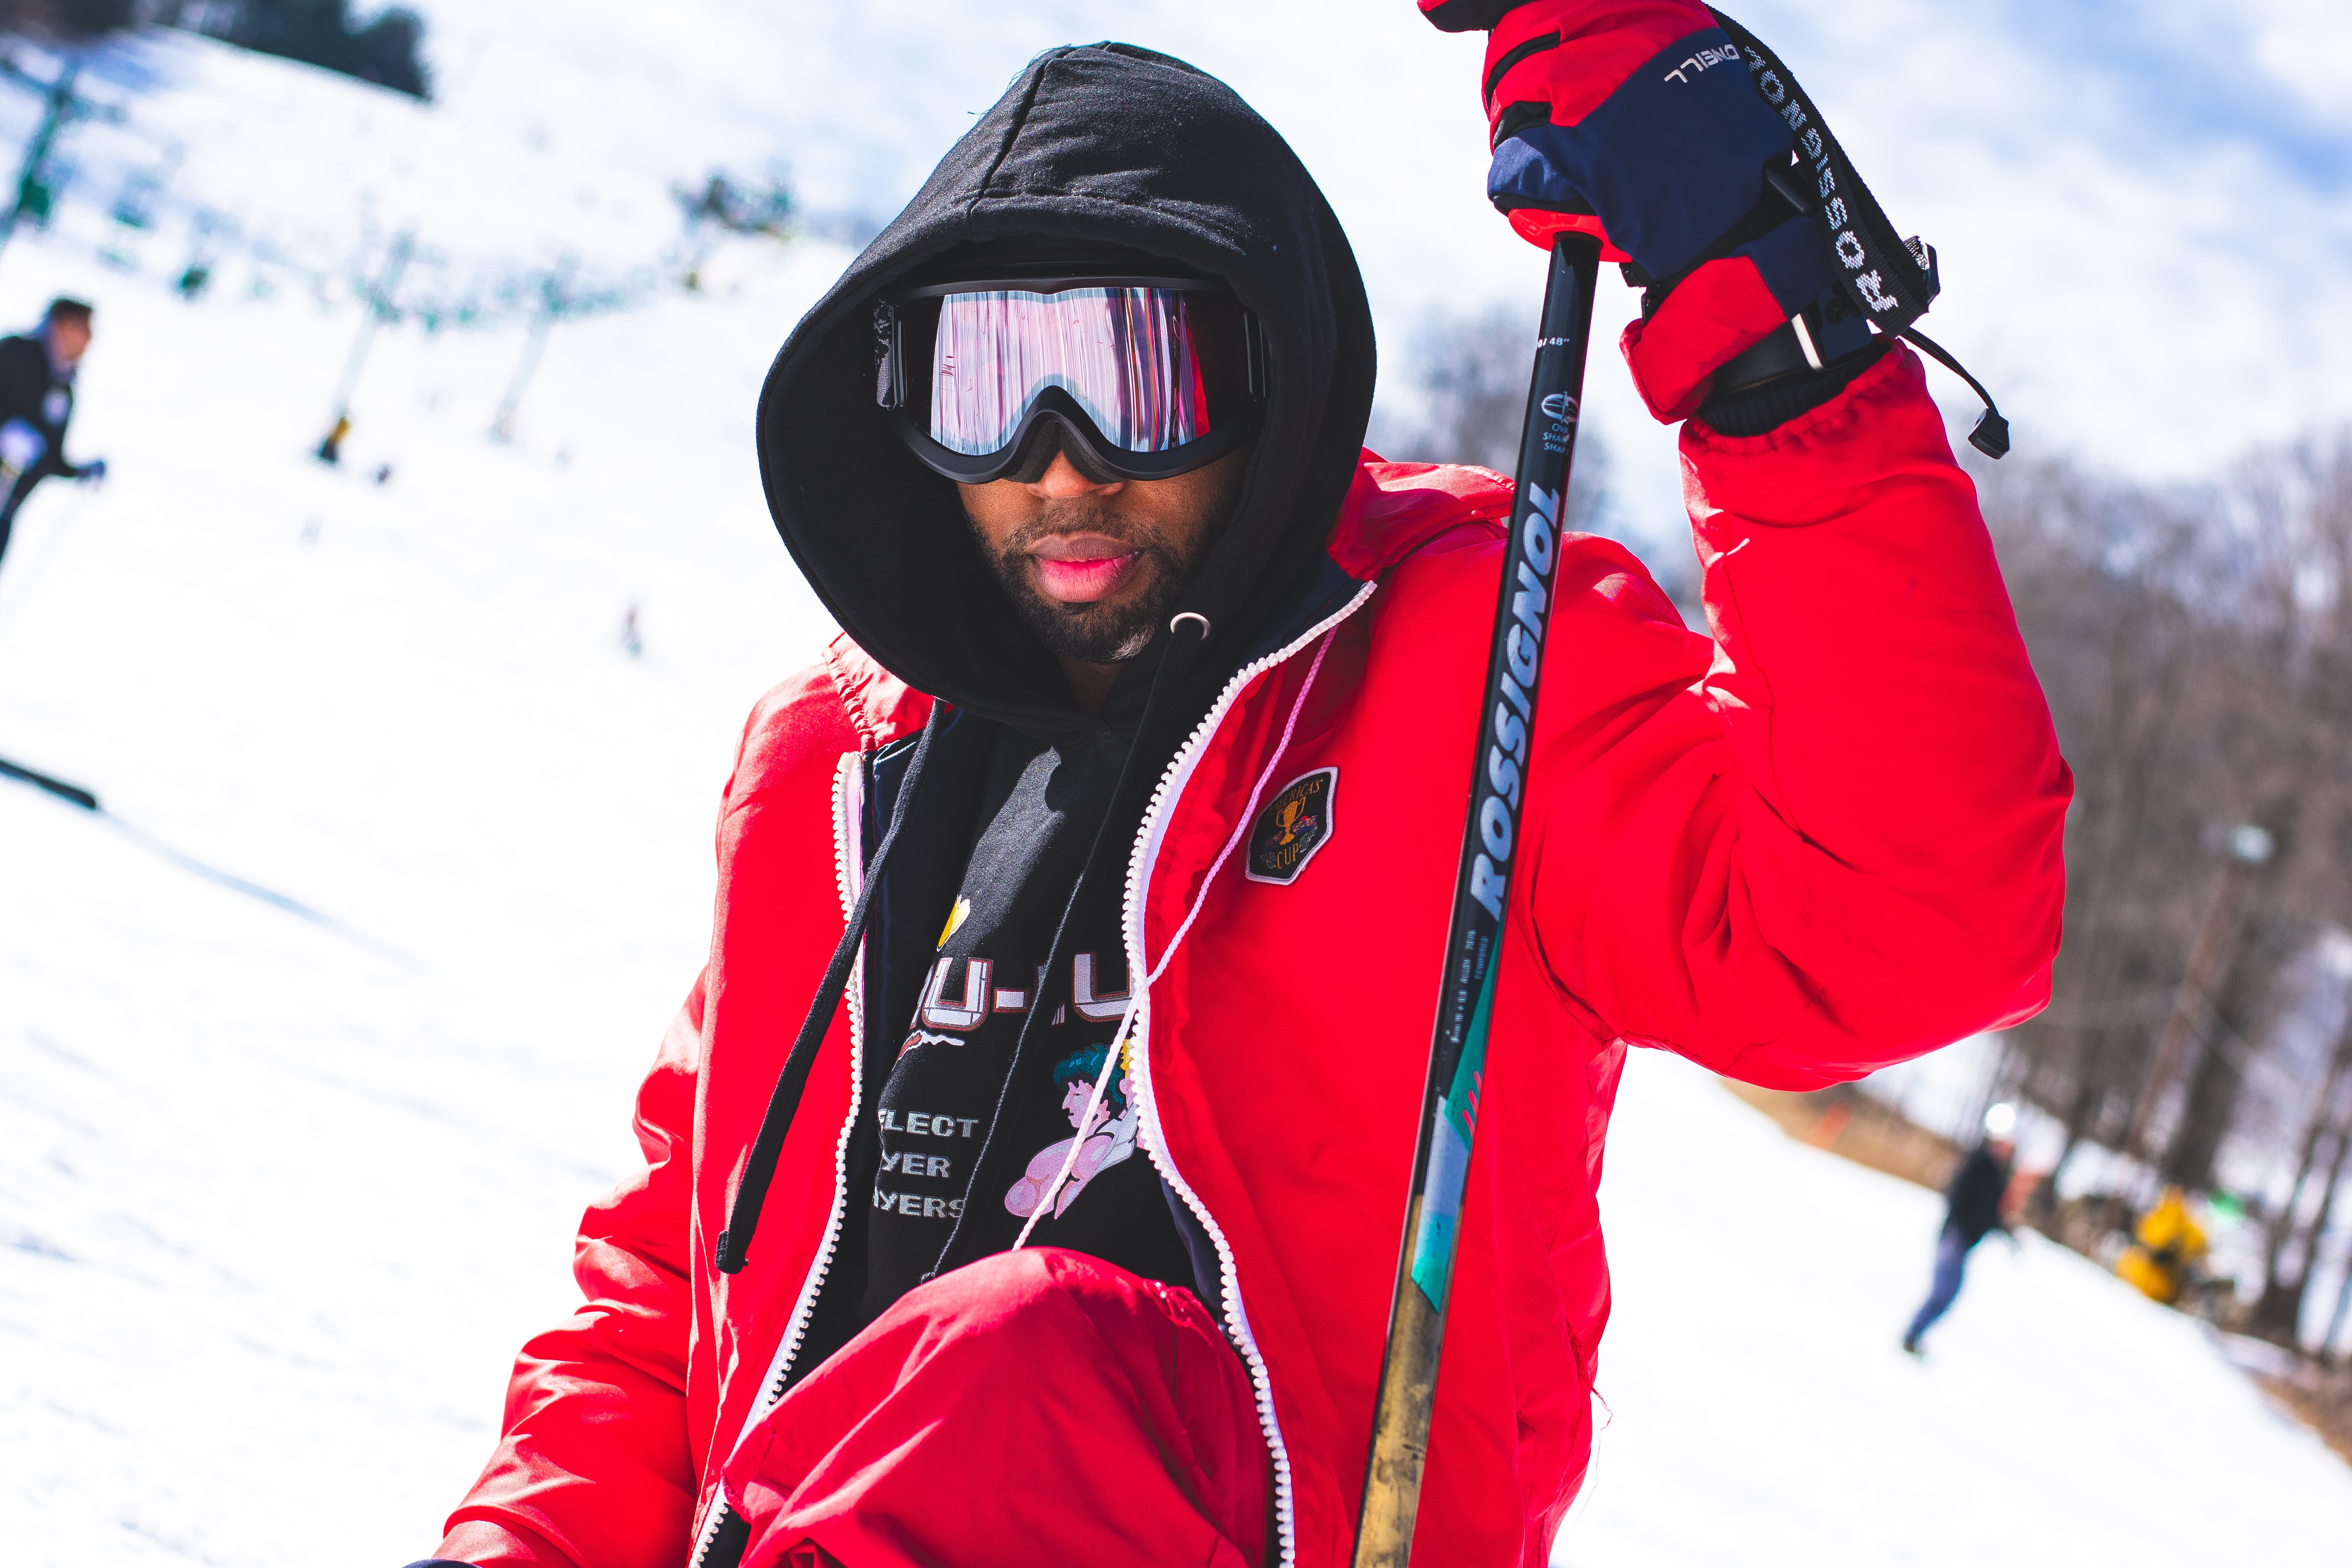 Man Wearing Googles and Holding Ski Pole